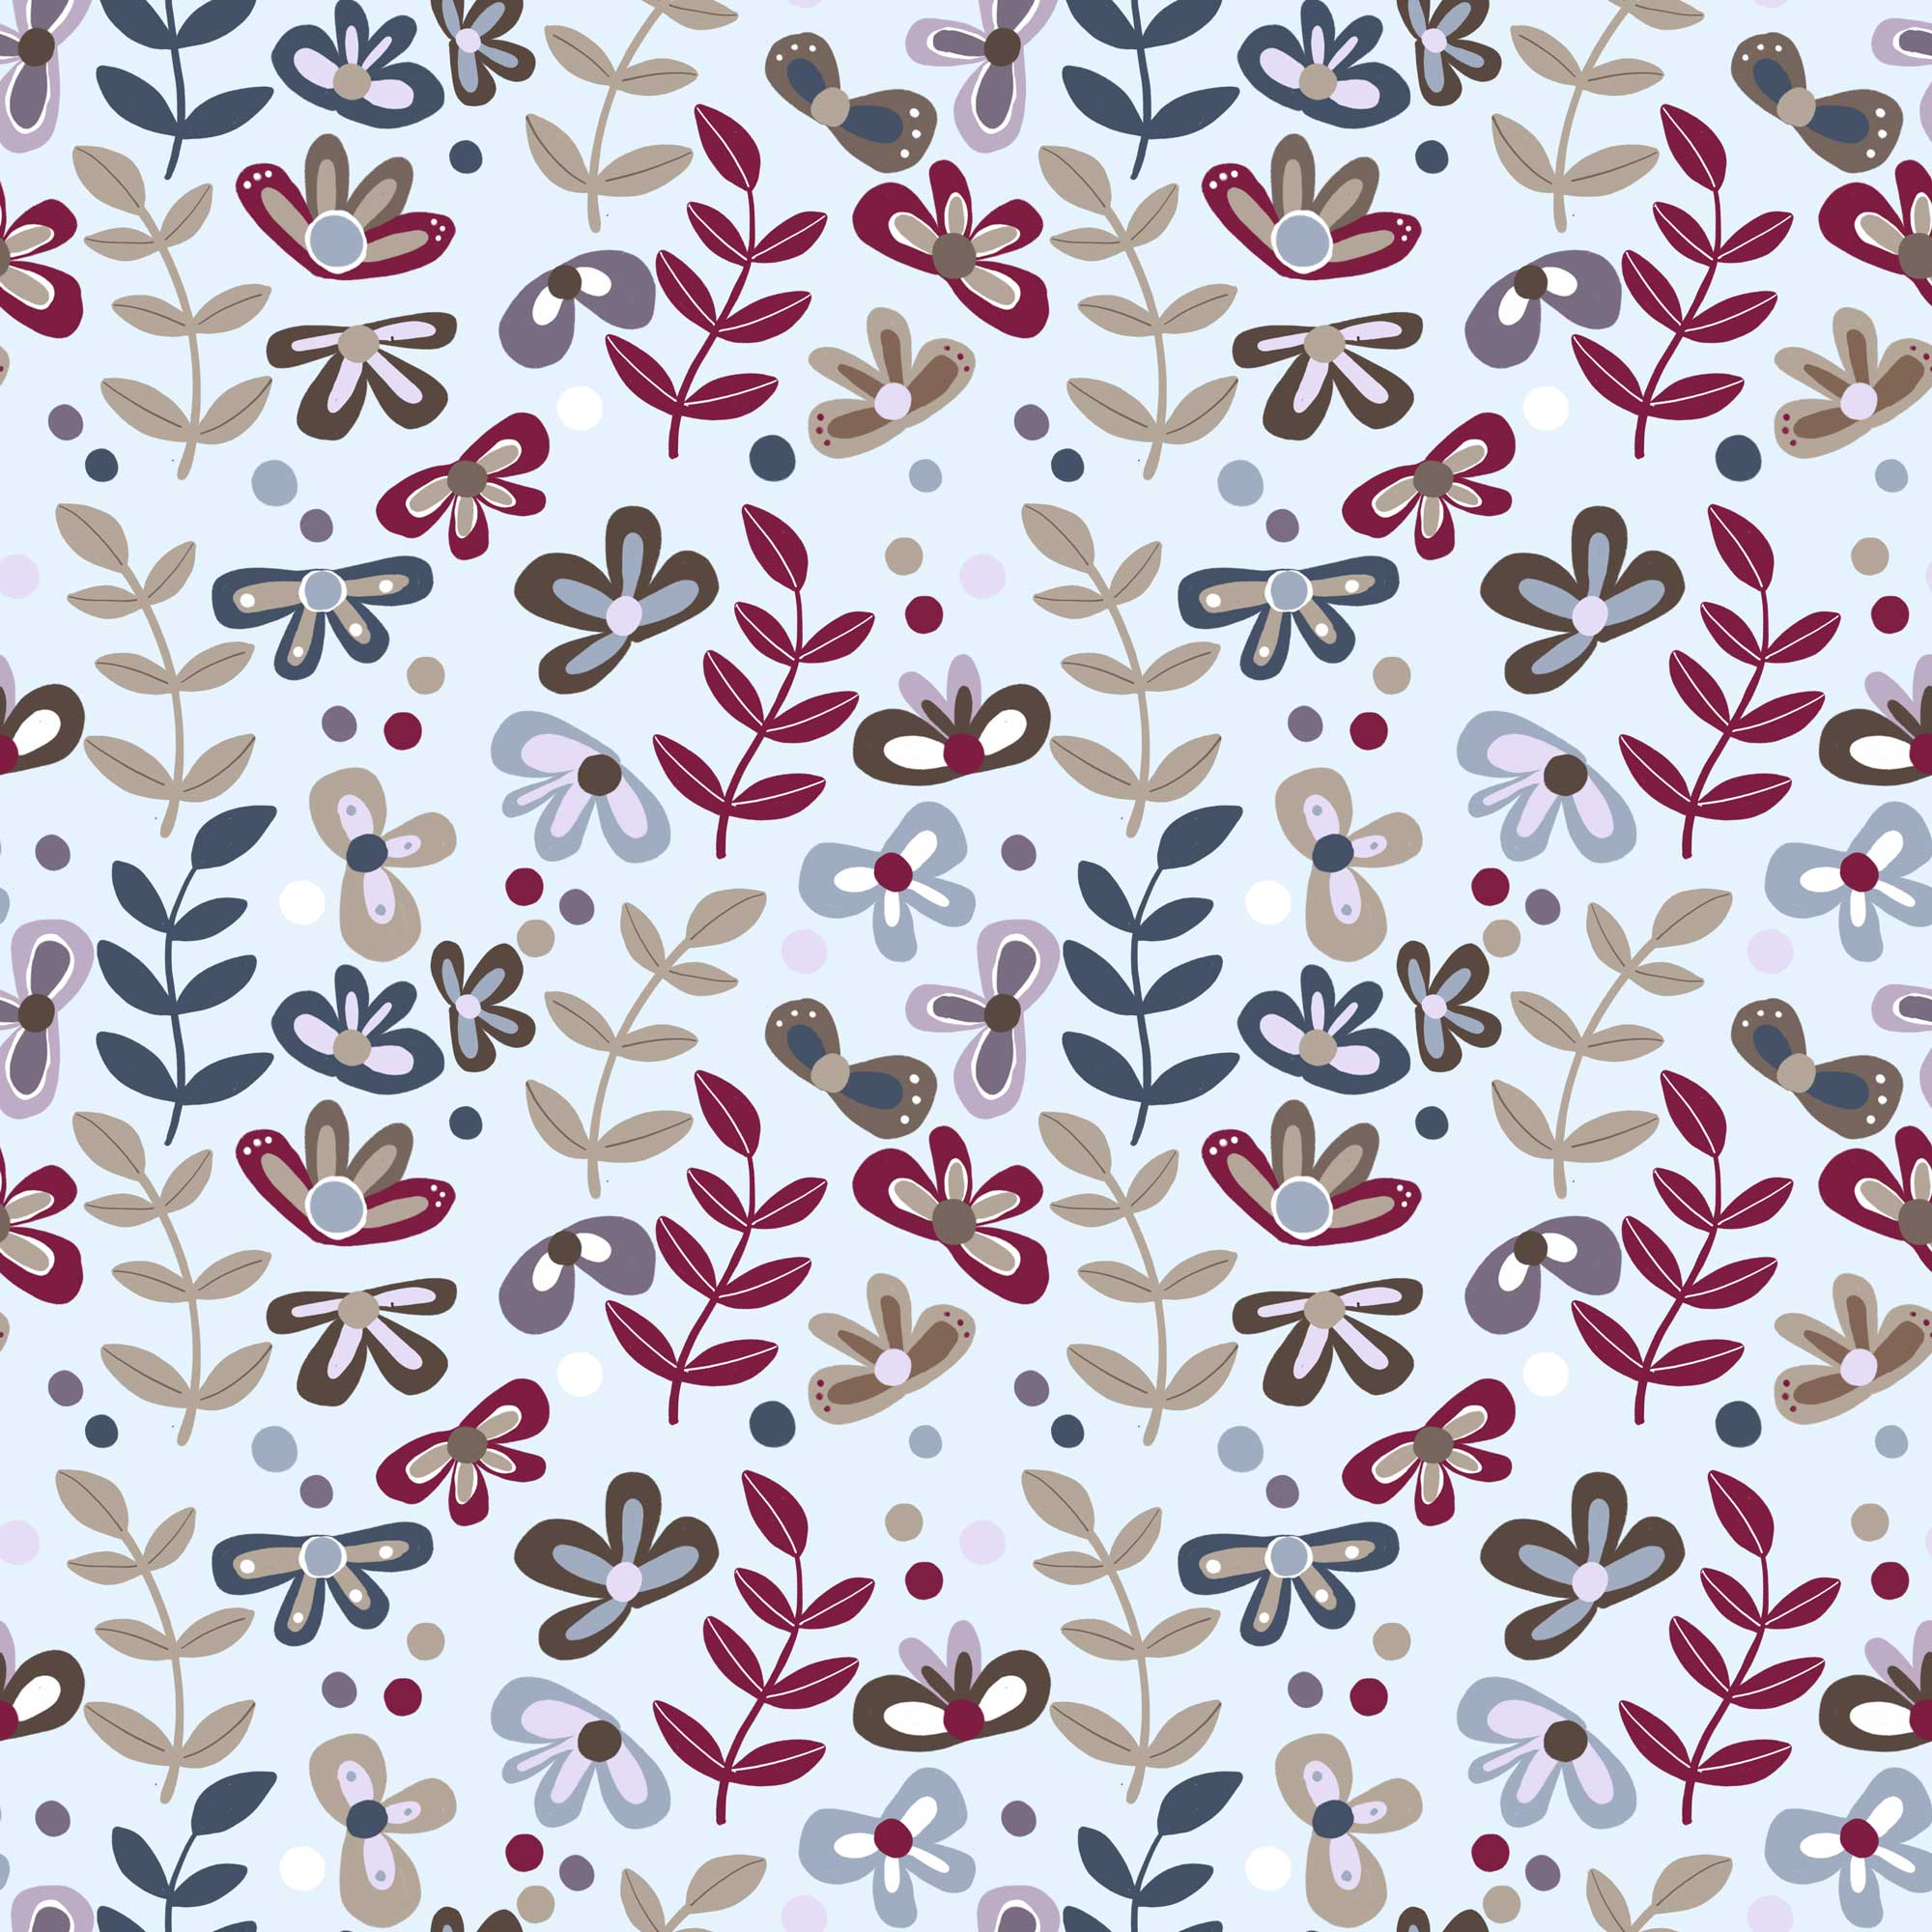 red-and-brown-leaves-and-flowers-pattern.jpg